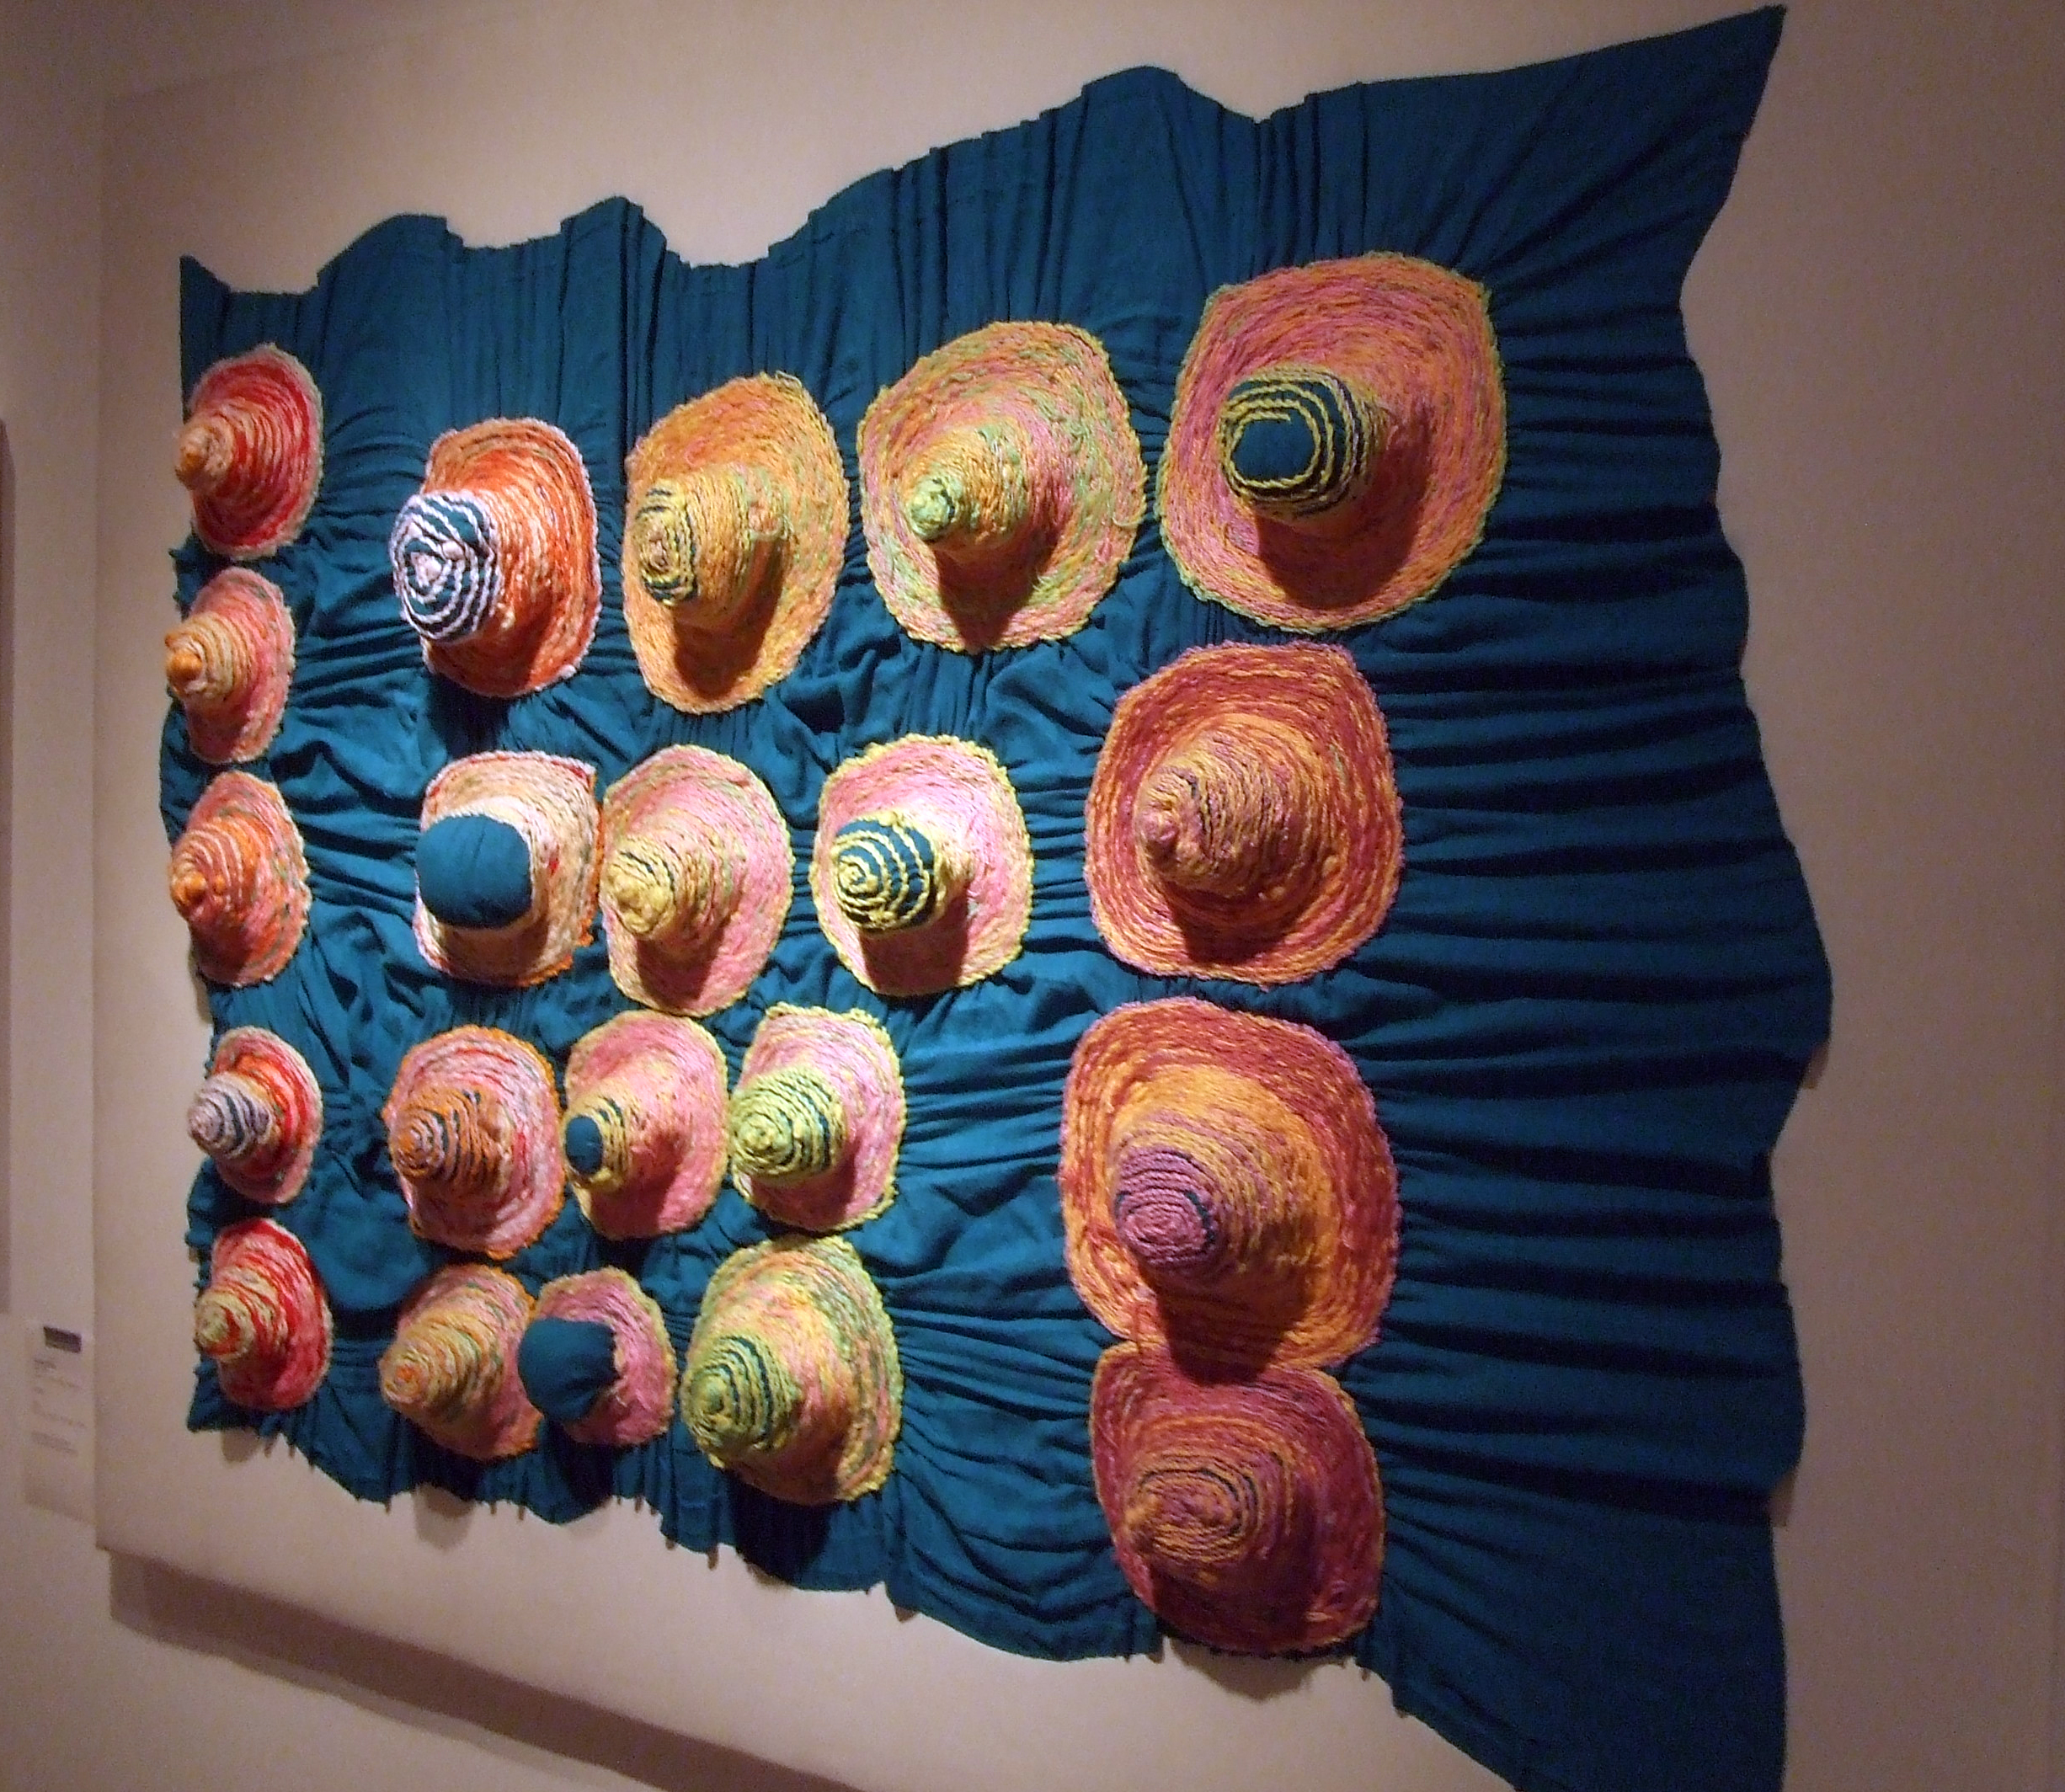 Yumiko Kawai, Circles, 2009, wool, acrylic yarns, cotton. Social Welfare Corporation Yamanami Atelier